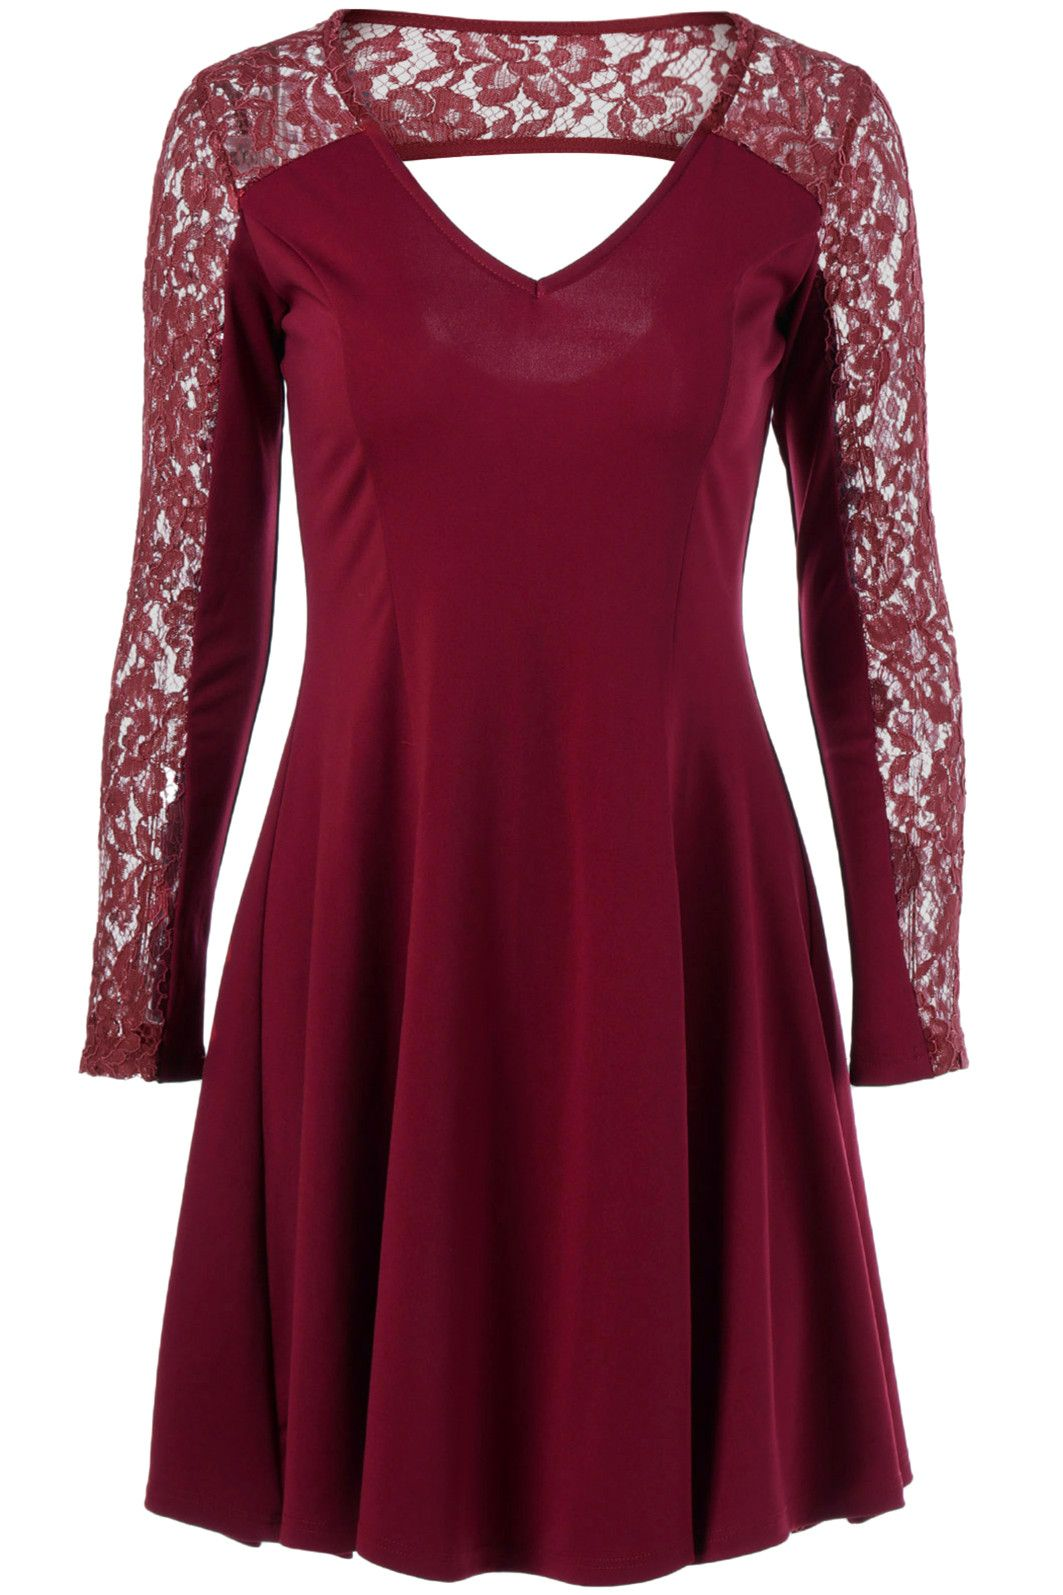 lace trim cut out dress wine red style pinterest